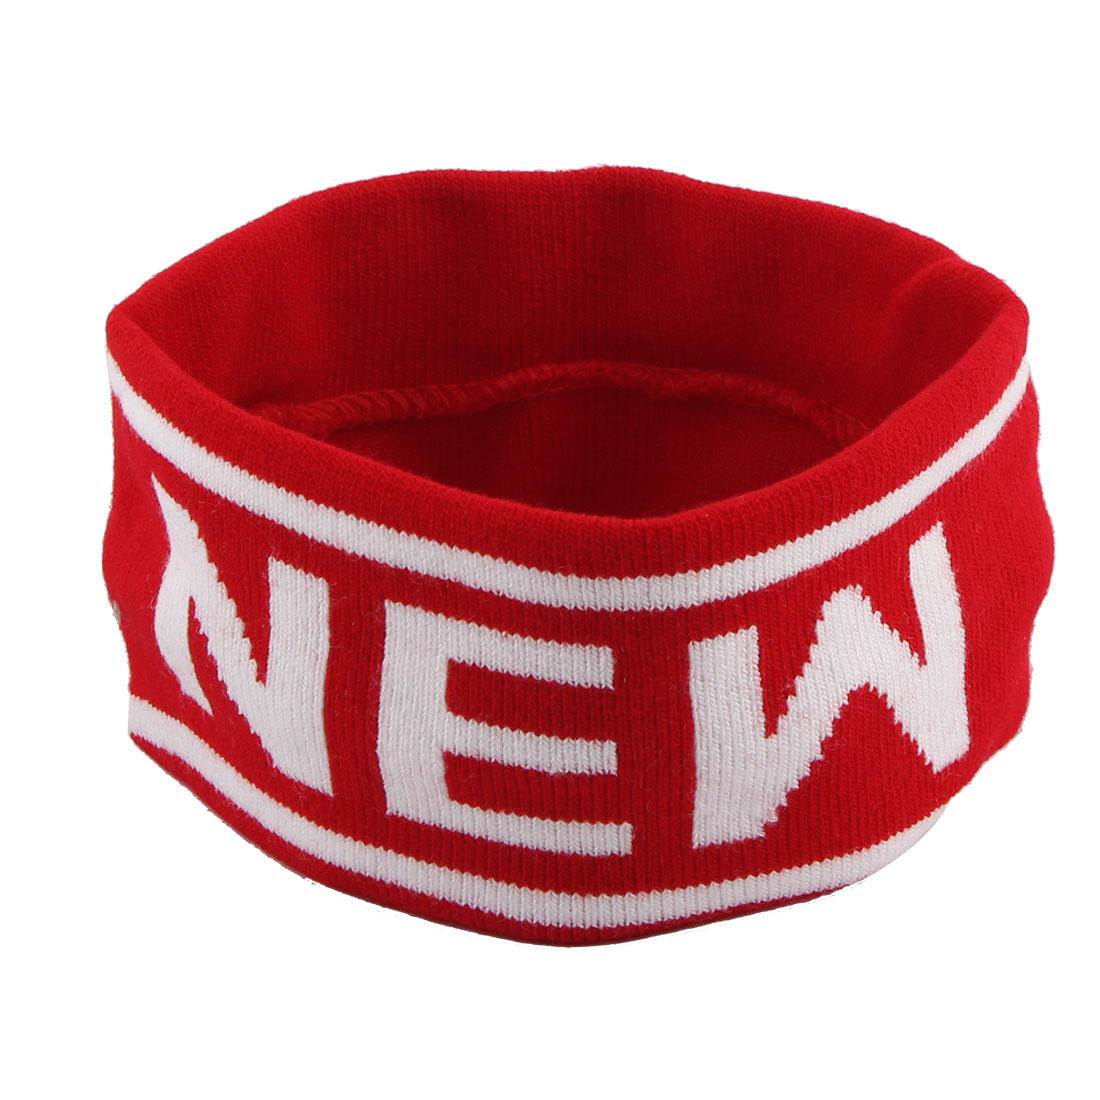 Yoga Volleyball Running Exercise Letter Print Elastic Hairstyle Sweatband Headband Red